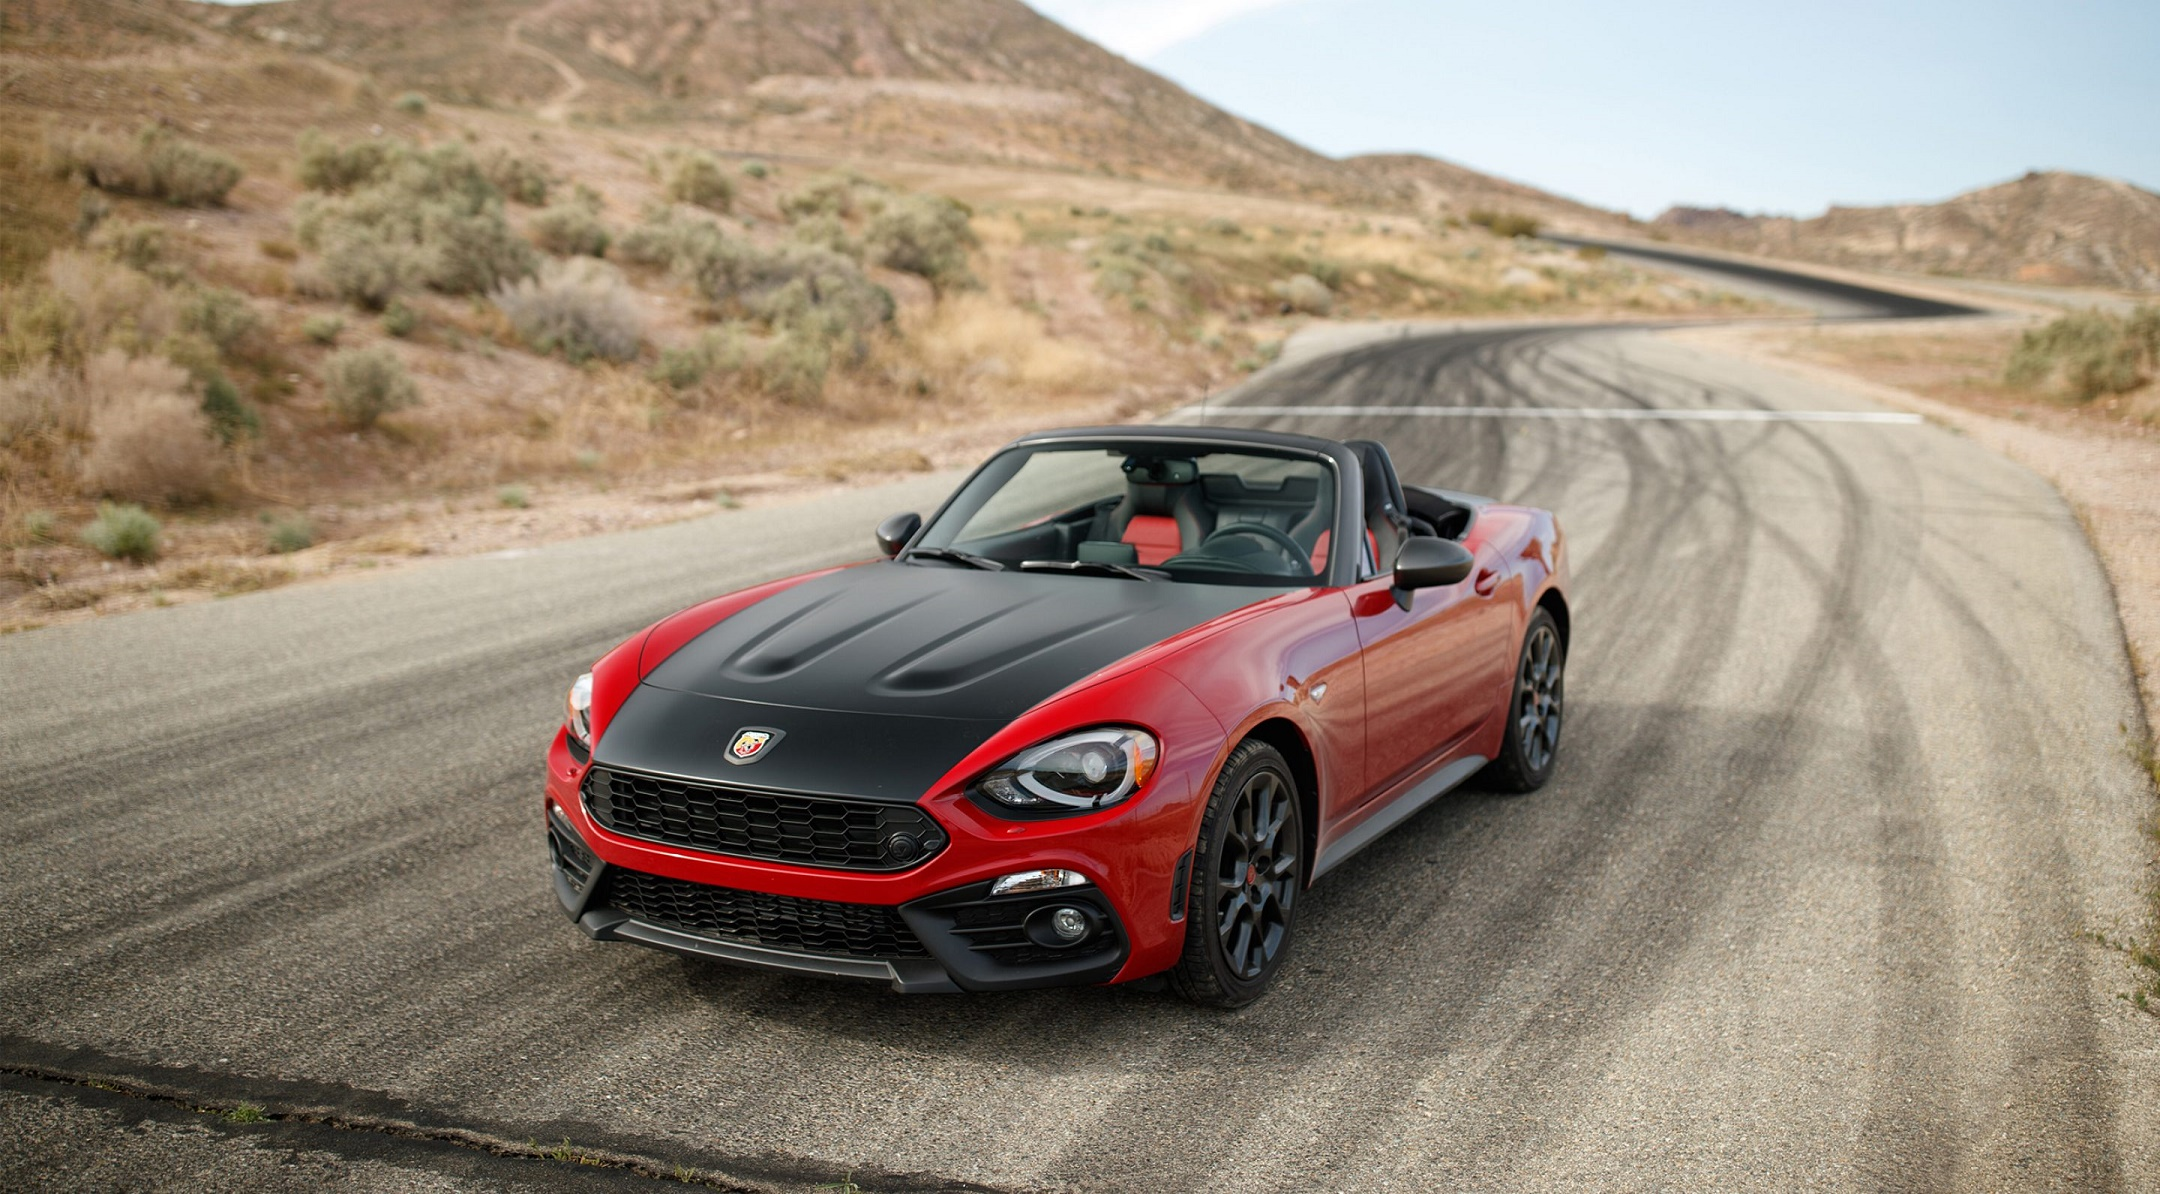 FIAT 124 SPIDER ABARTH, UN ROADSTER CON HERENCIA EUROPEA